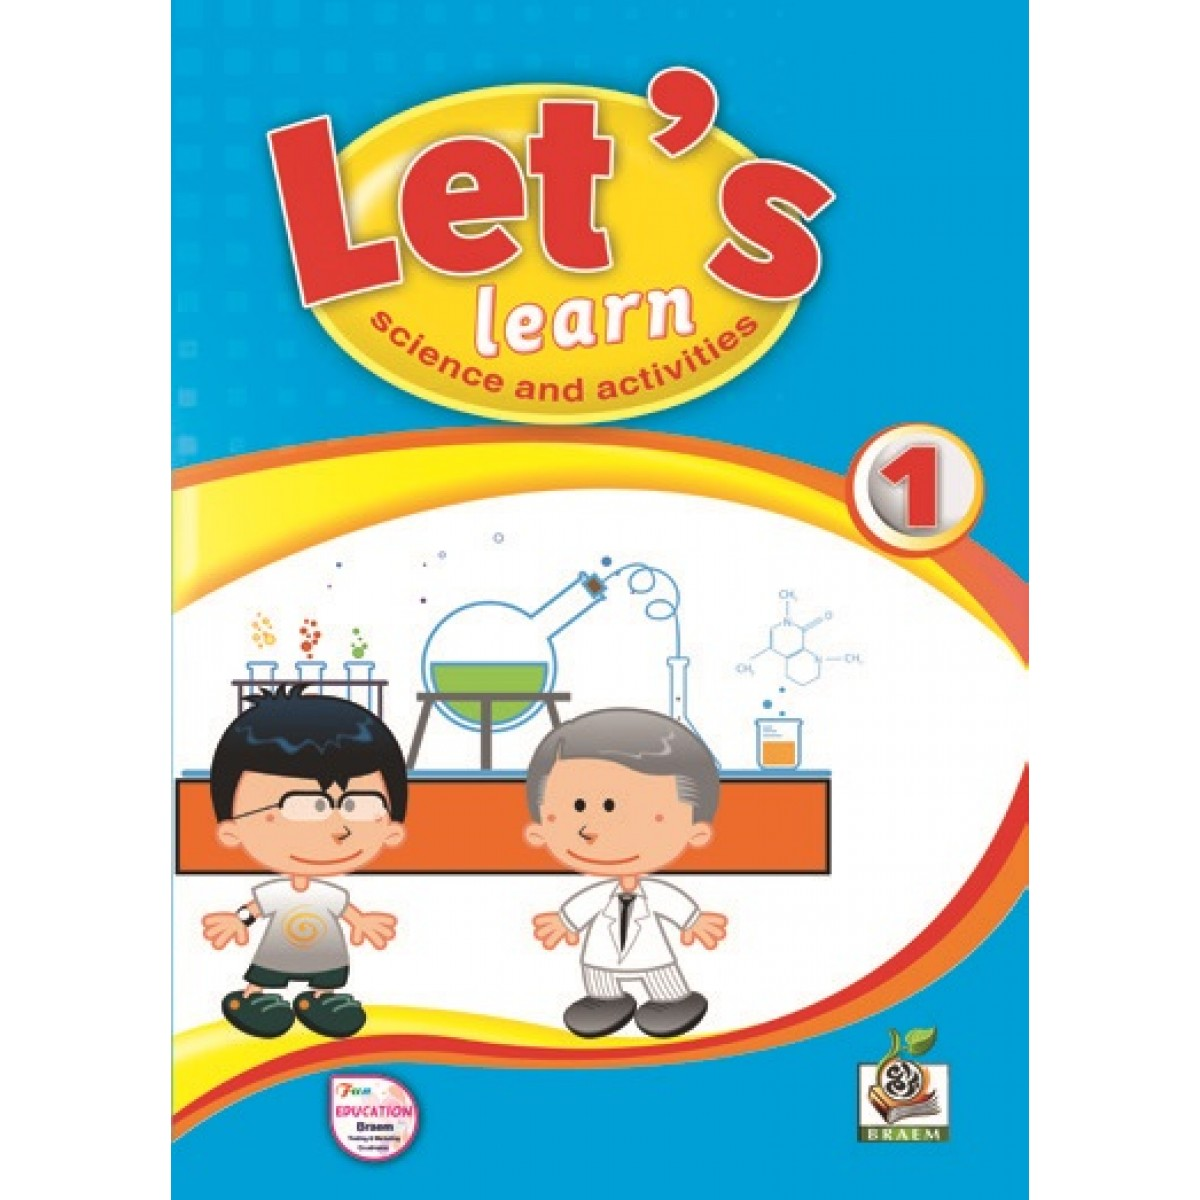 Let's Learn Science and Activities  1